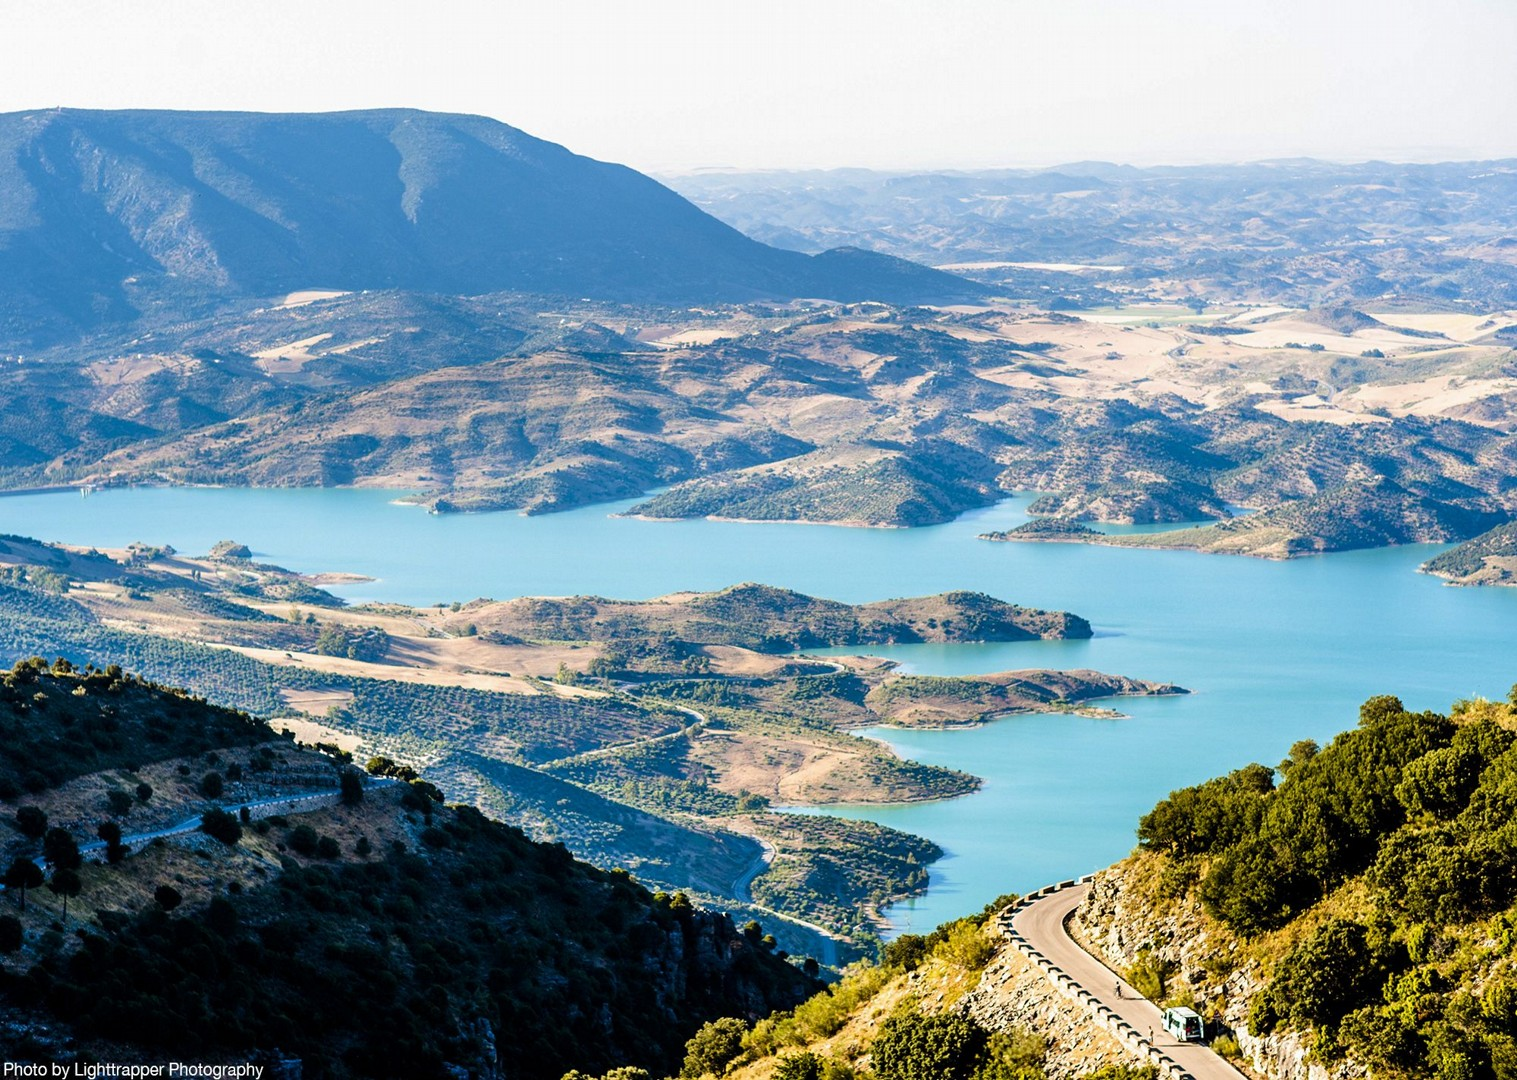 mountains-roads-of-ronda-scenery-cycling-tour-spain.jpg - Southern Spain - Roads of Ronda - Self-Guided Road Cycling Holiday - Road Cycling